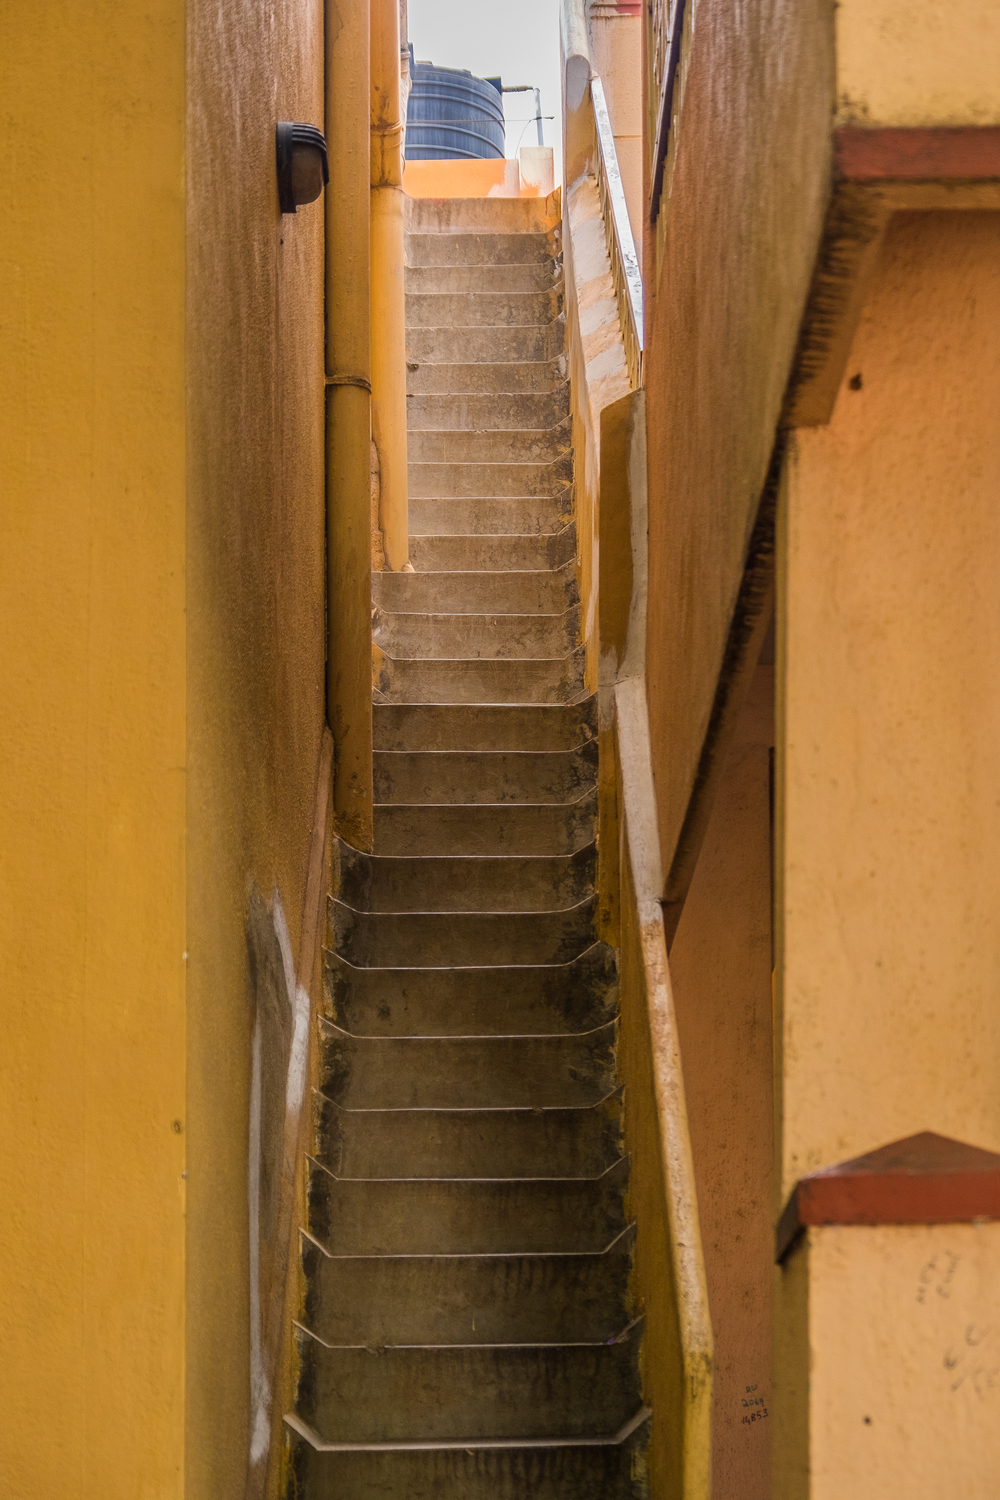 narrow alleyway staircase against yellow walls